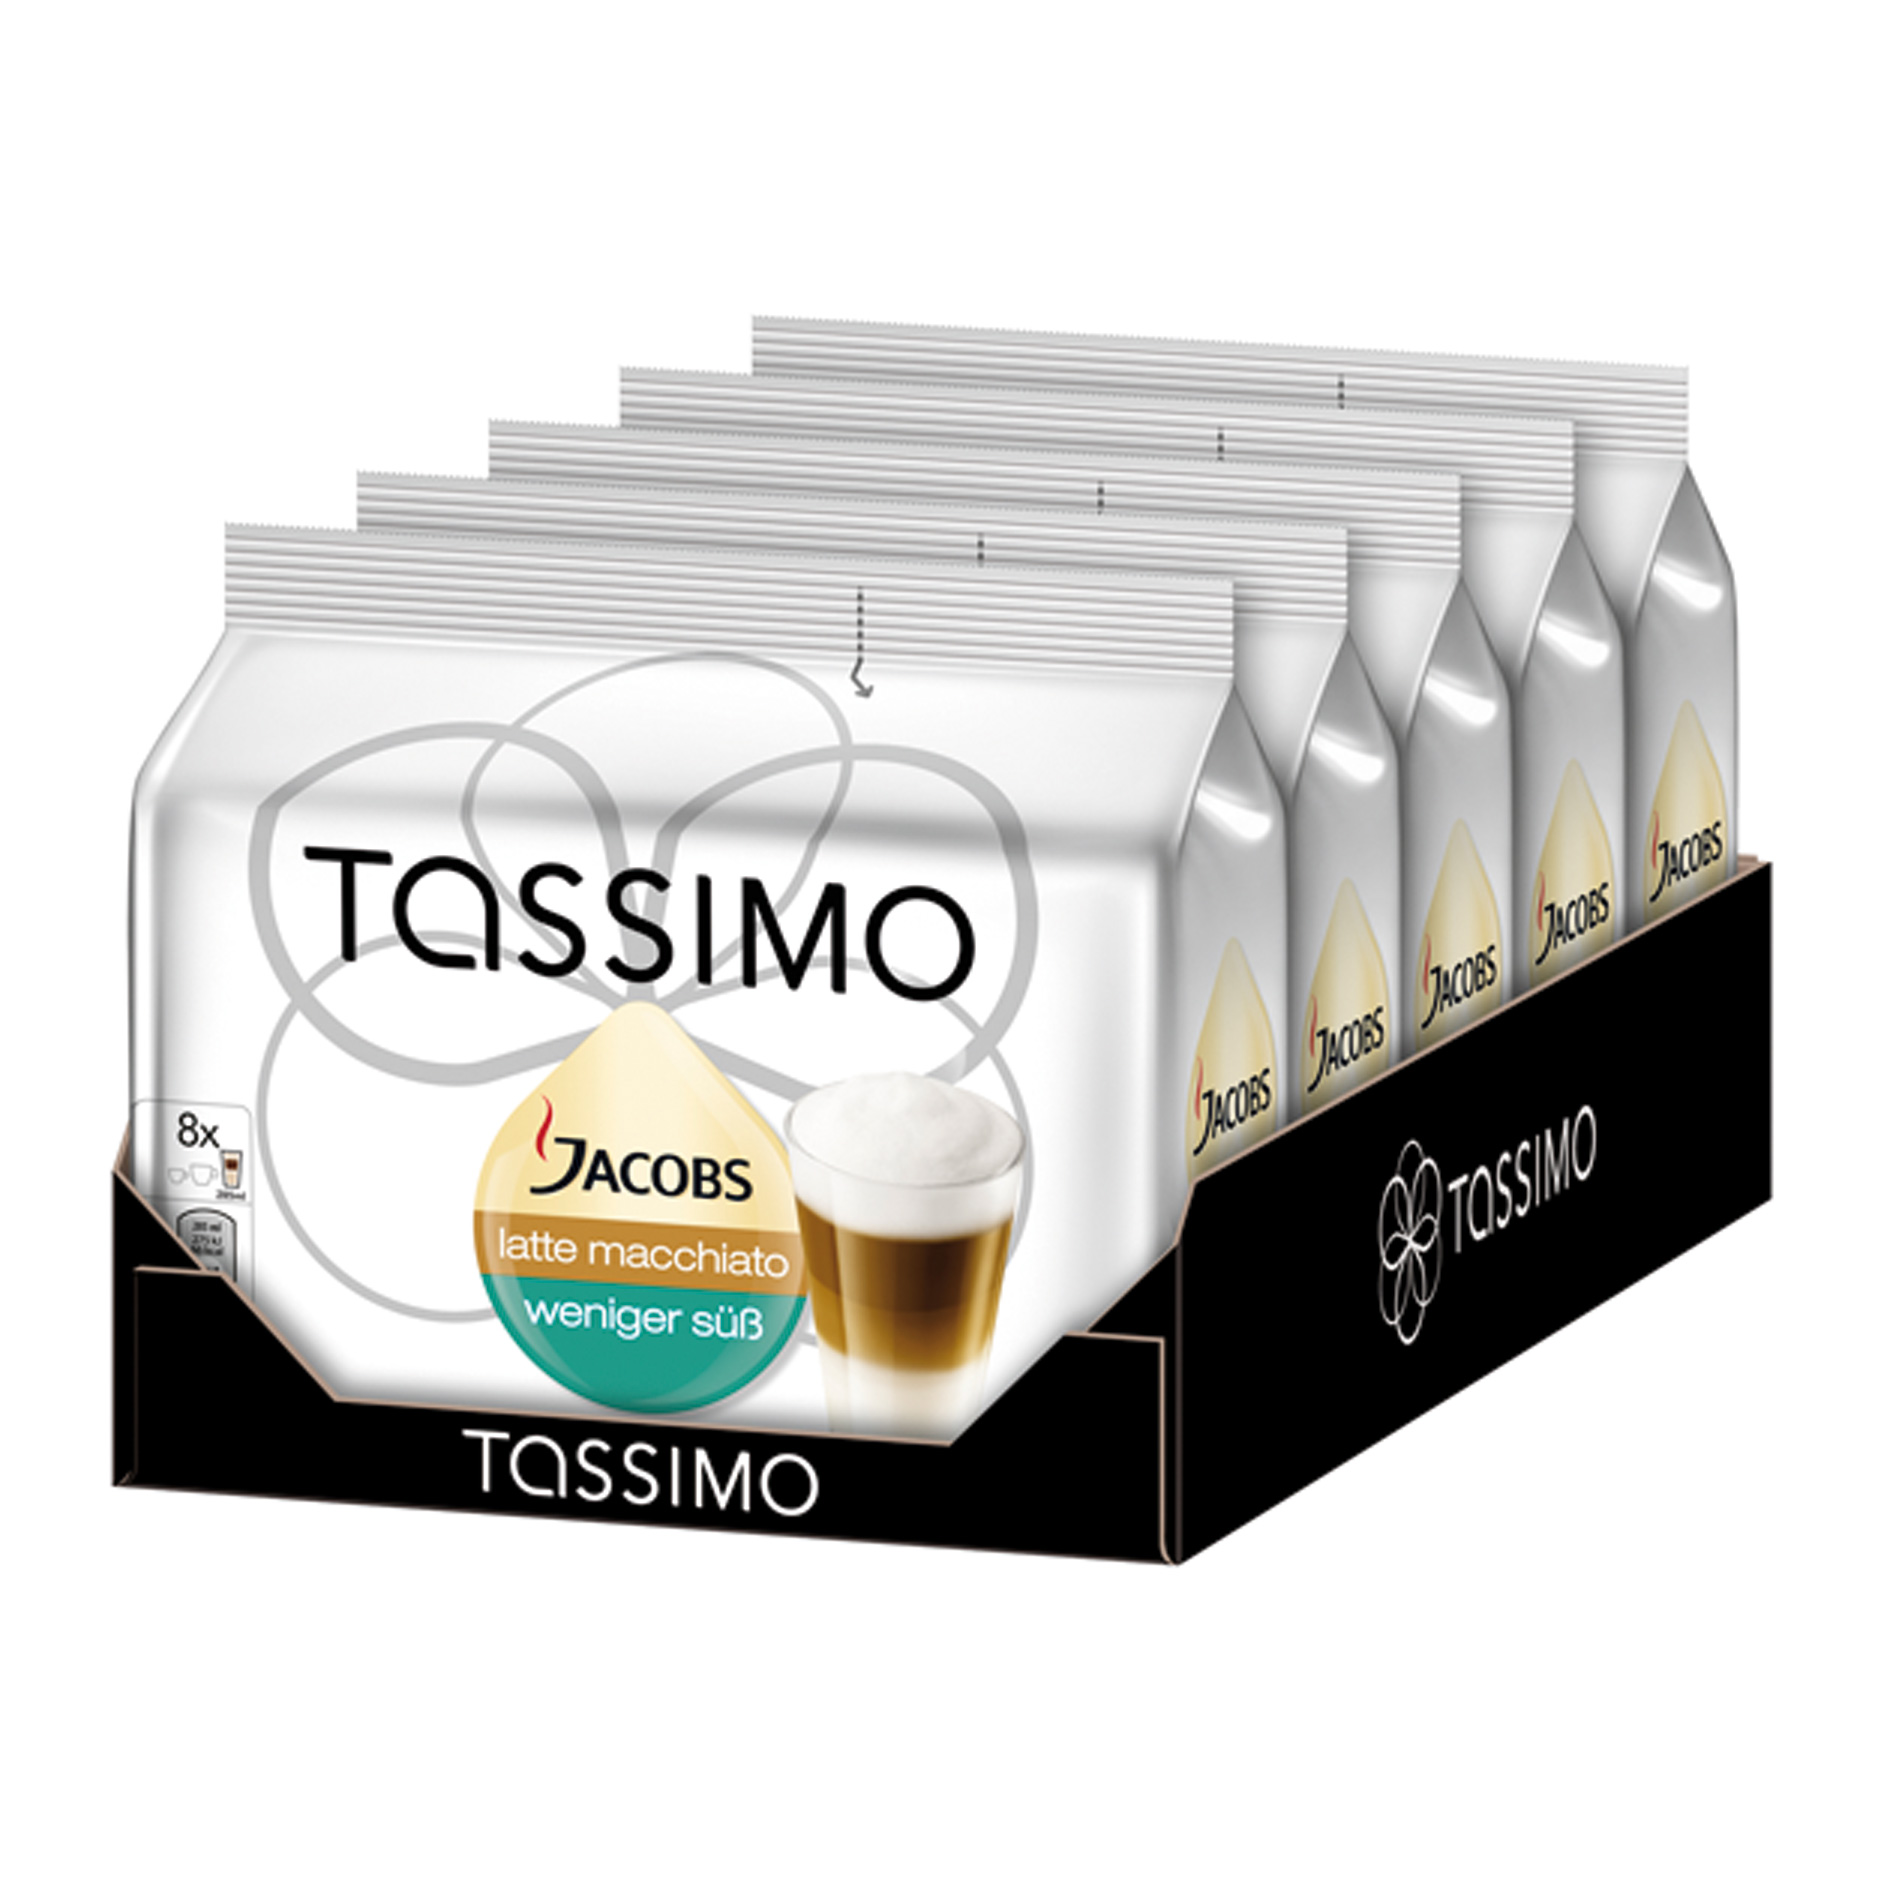 tassimo latte macchiato less sugar rainforest alliance certified pack of 5 5 x 16 t discs 8. Black Bedroom Furniture Sets. Home Design Ideas